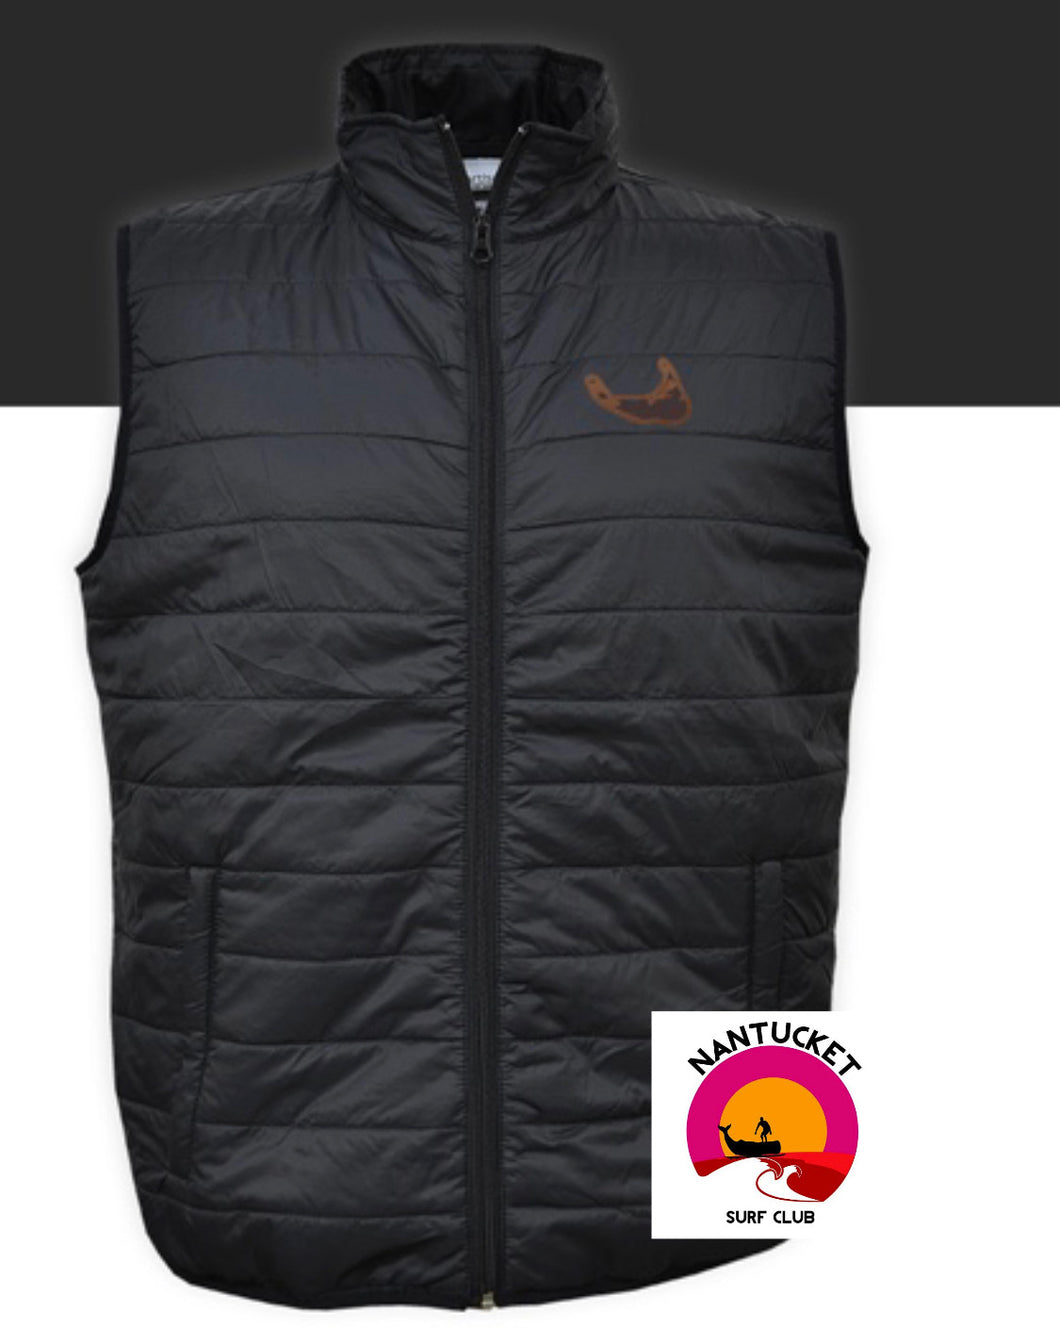 Trail Ways Vest With Nantucket